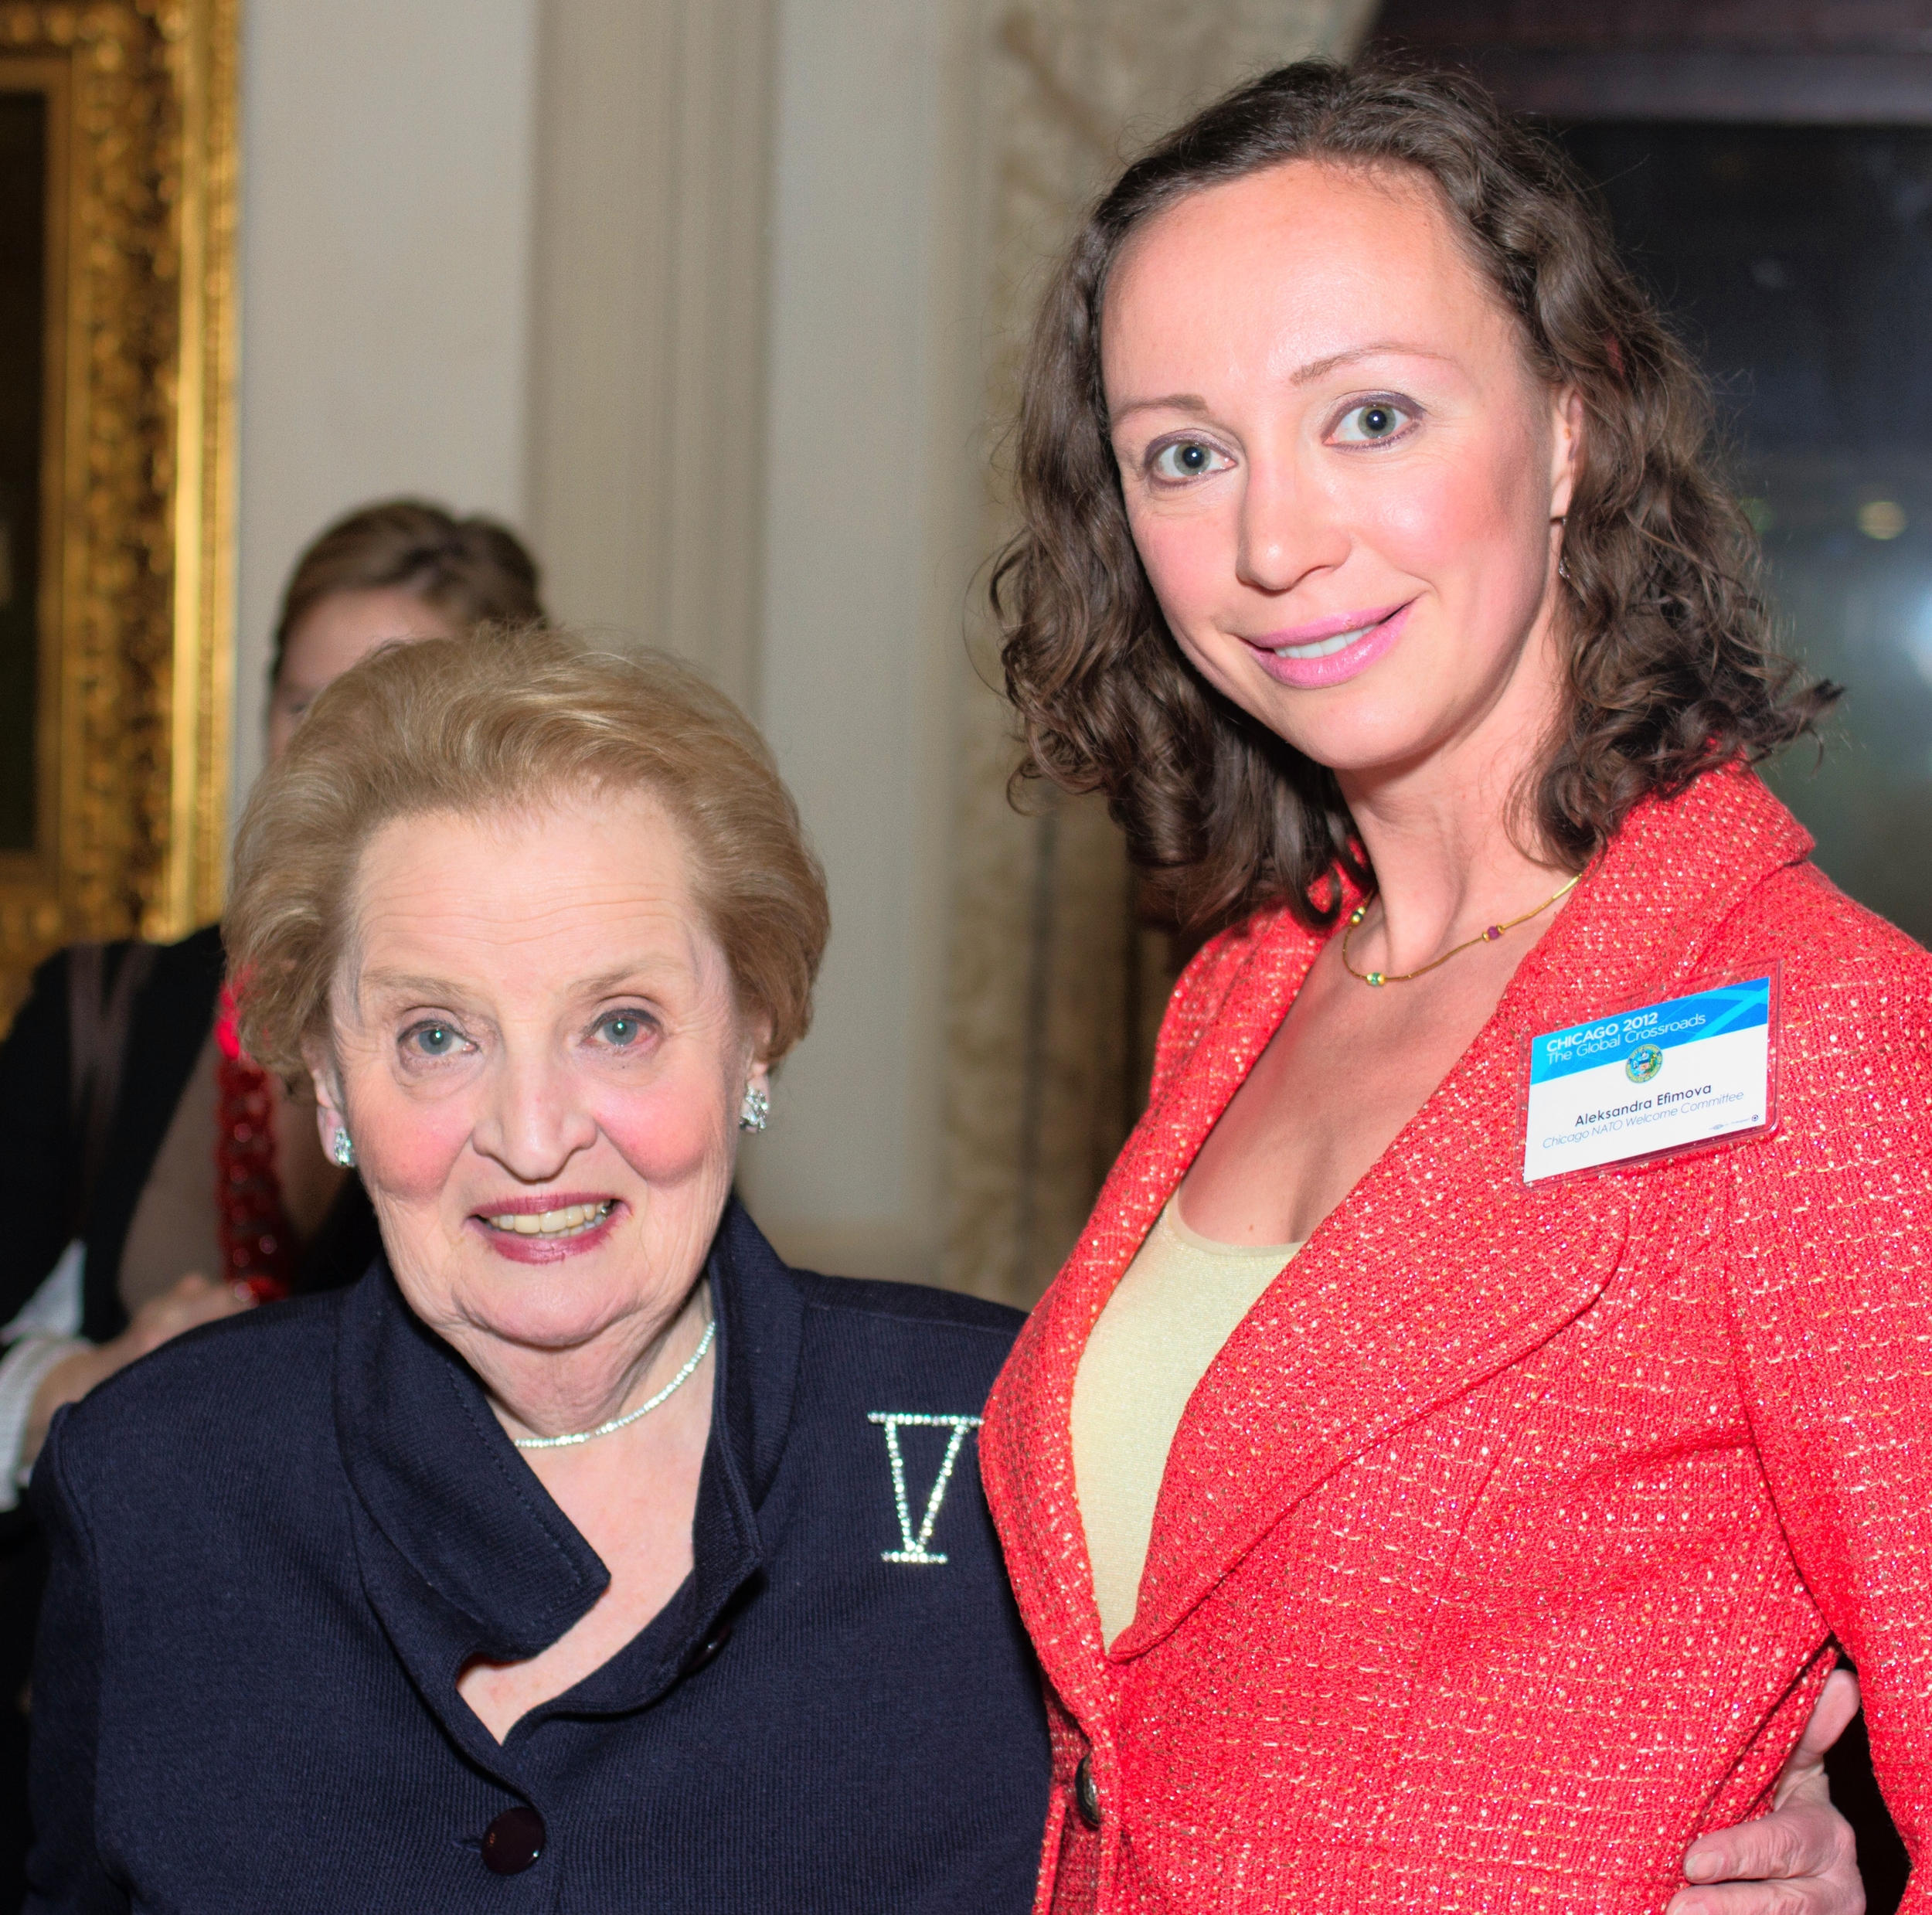 Madeleine Albright | First Female Secretary of State, 1997-2001, Chicago, IL